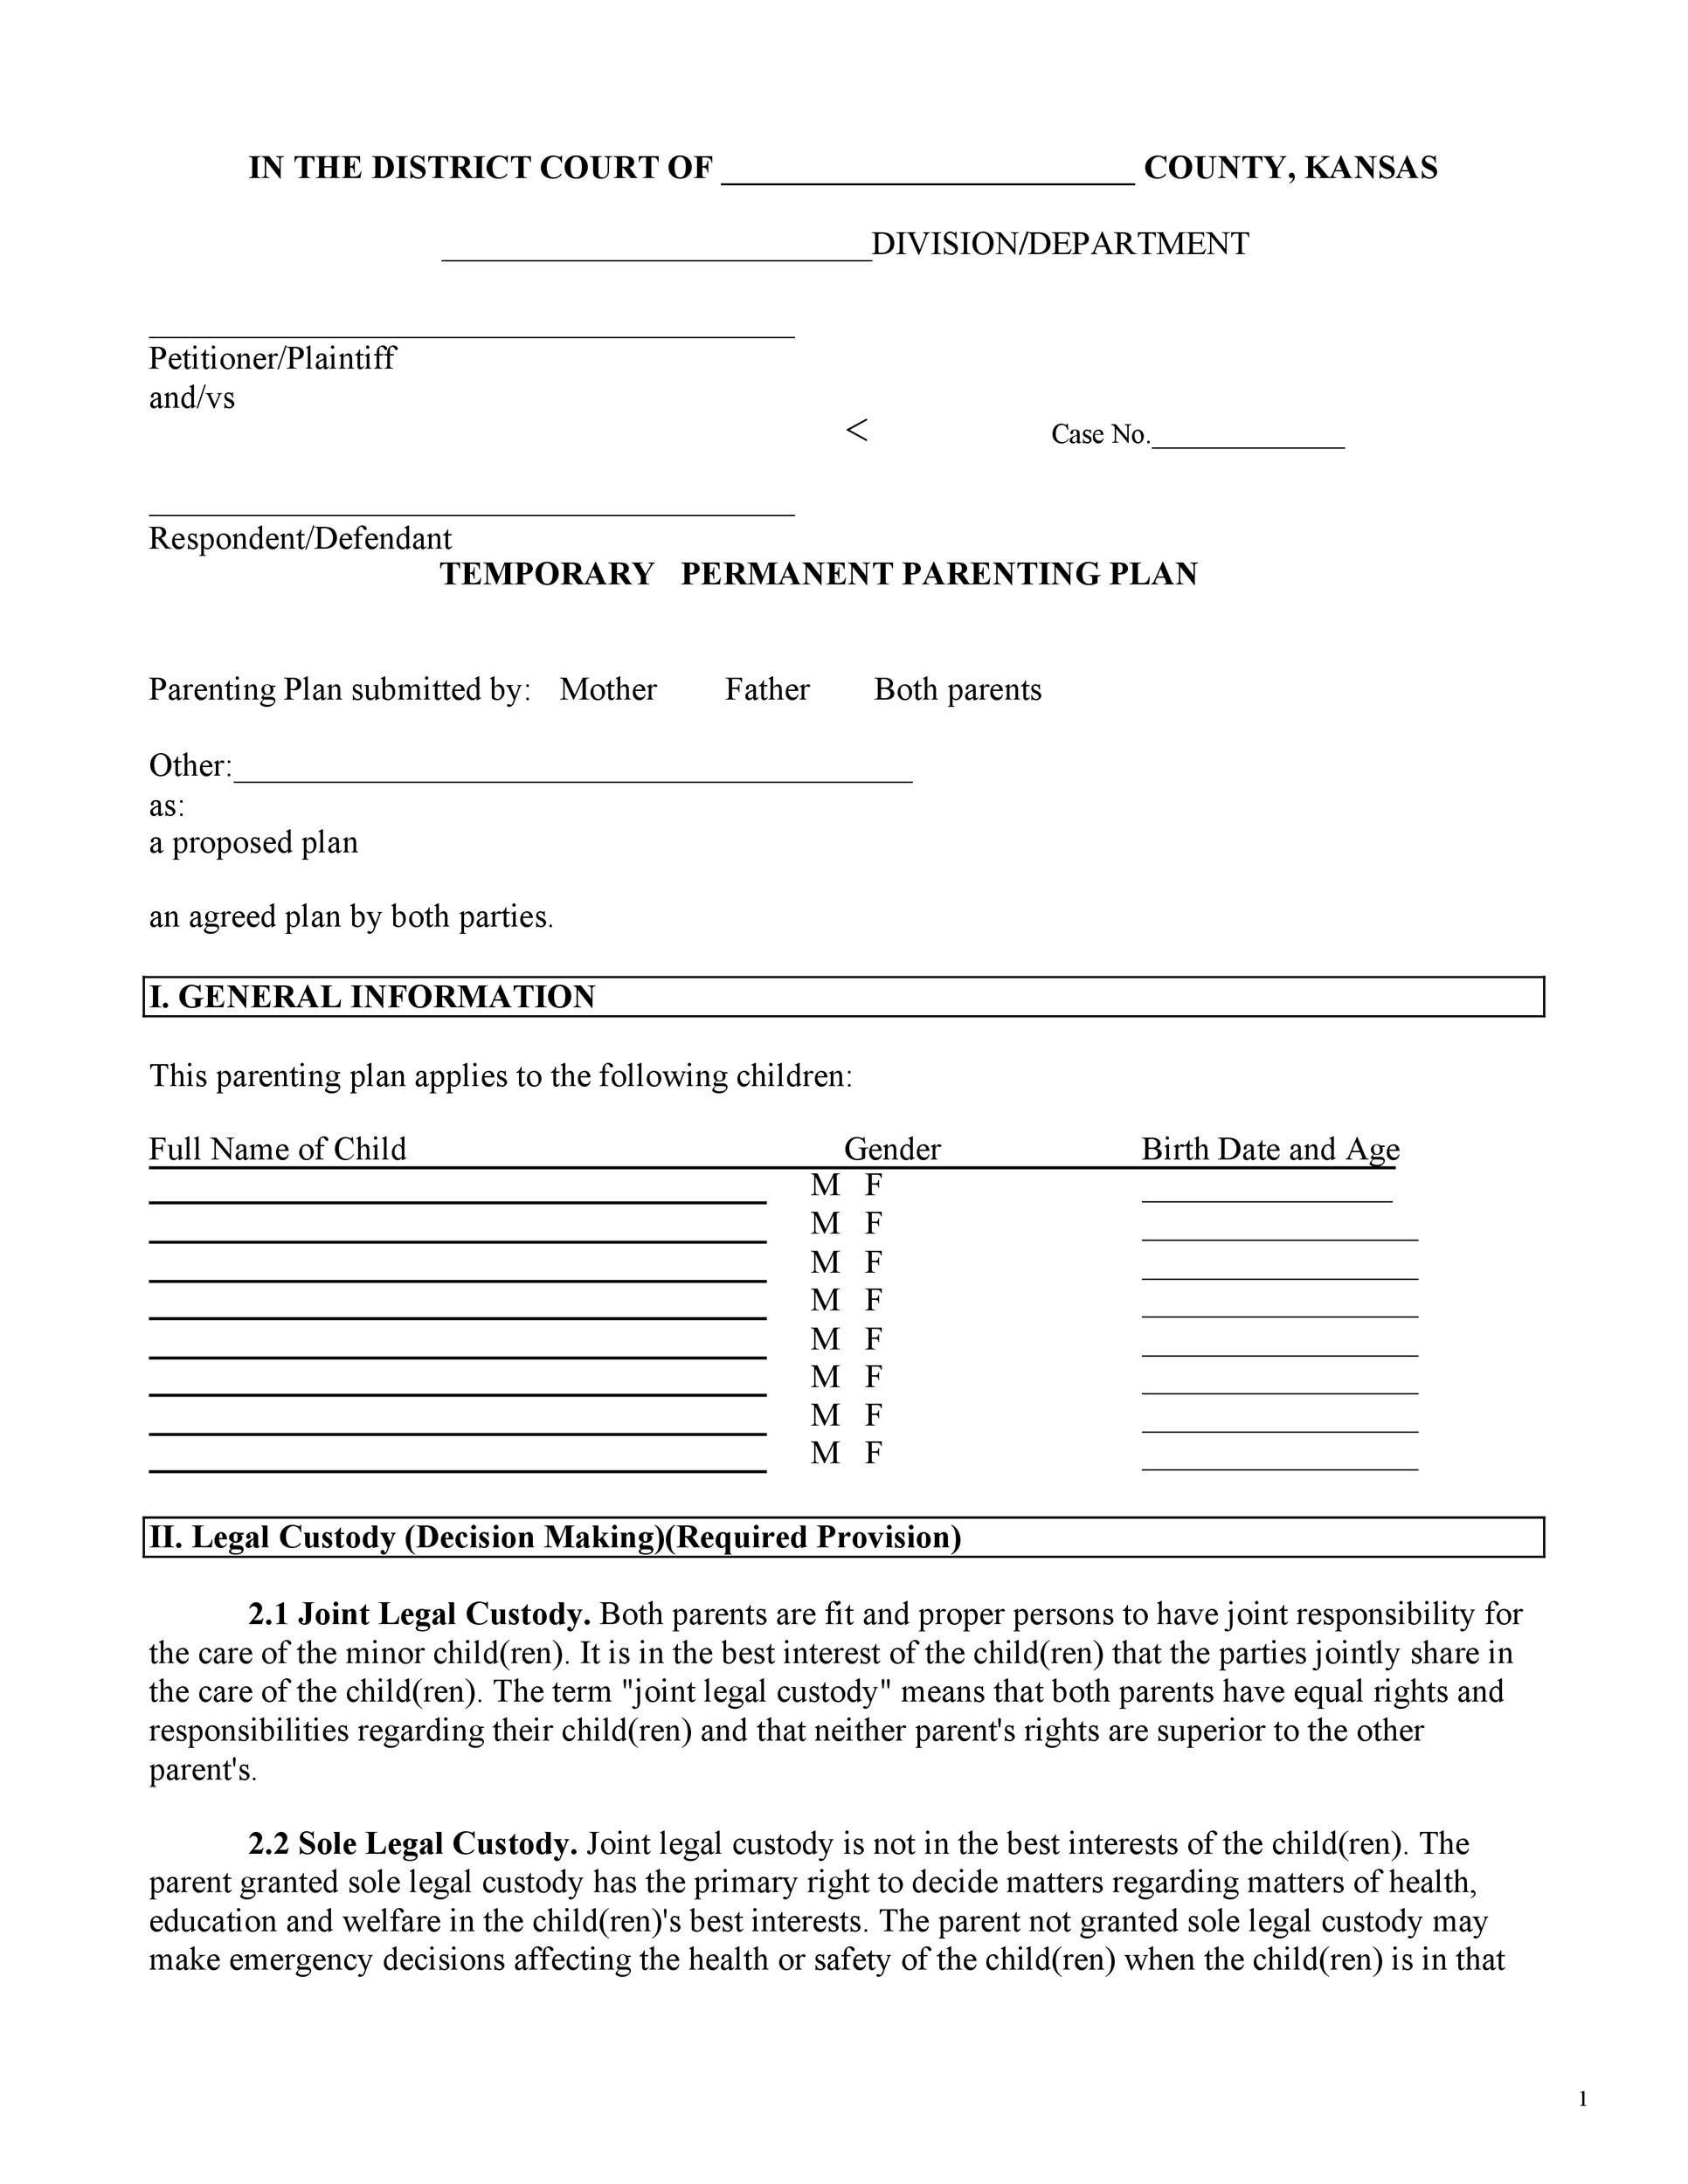 Free parenting plan template 01